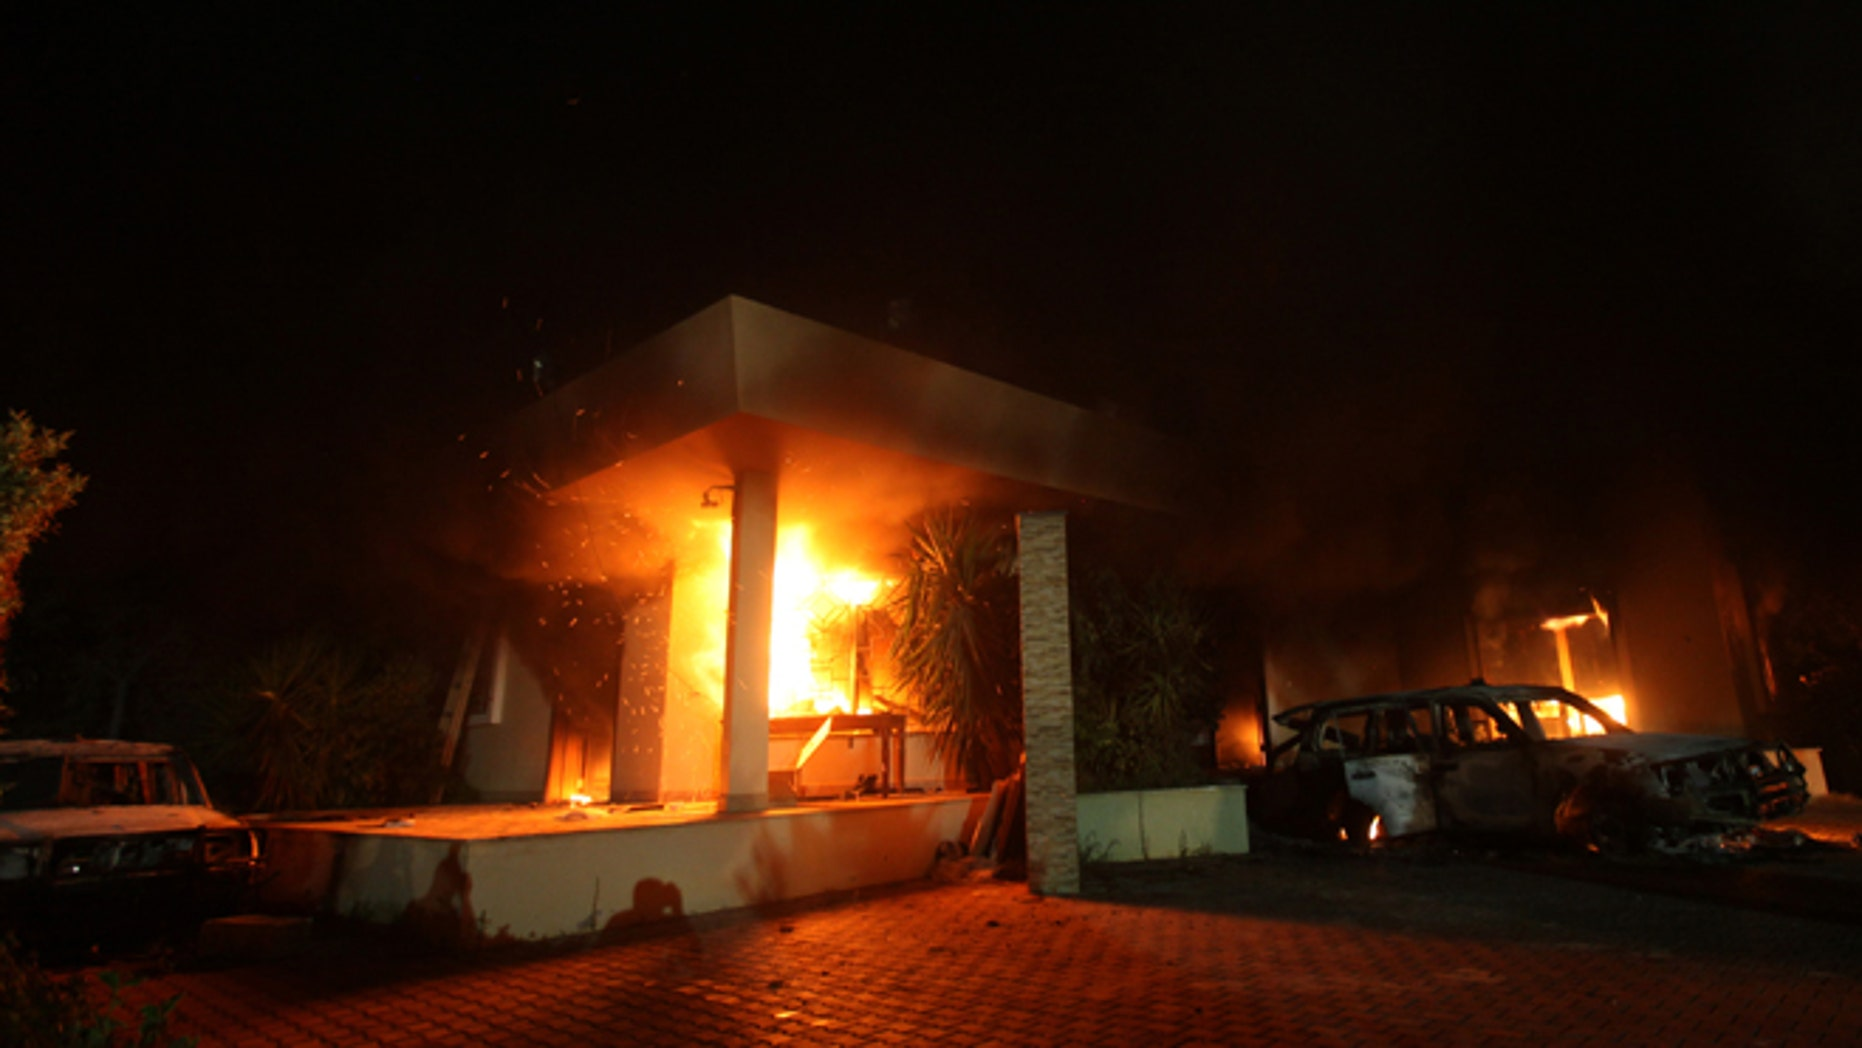 Sept. 11, 2012: The U.S. Consulate in Benghazi is seen in flames during a terrorist attack that claimed the lives of four Americans.